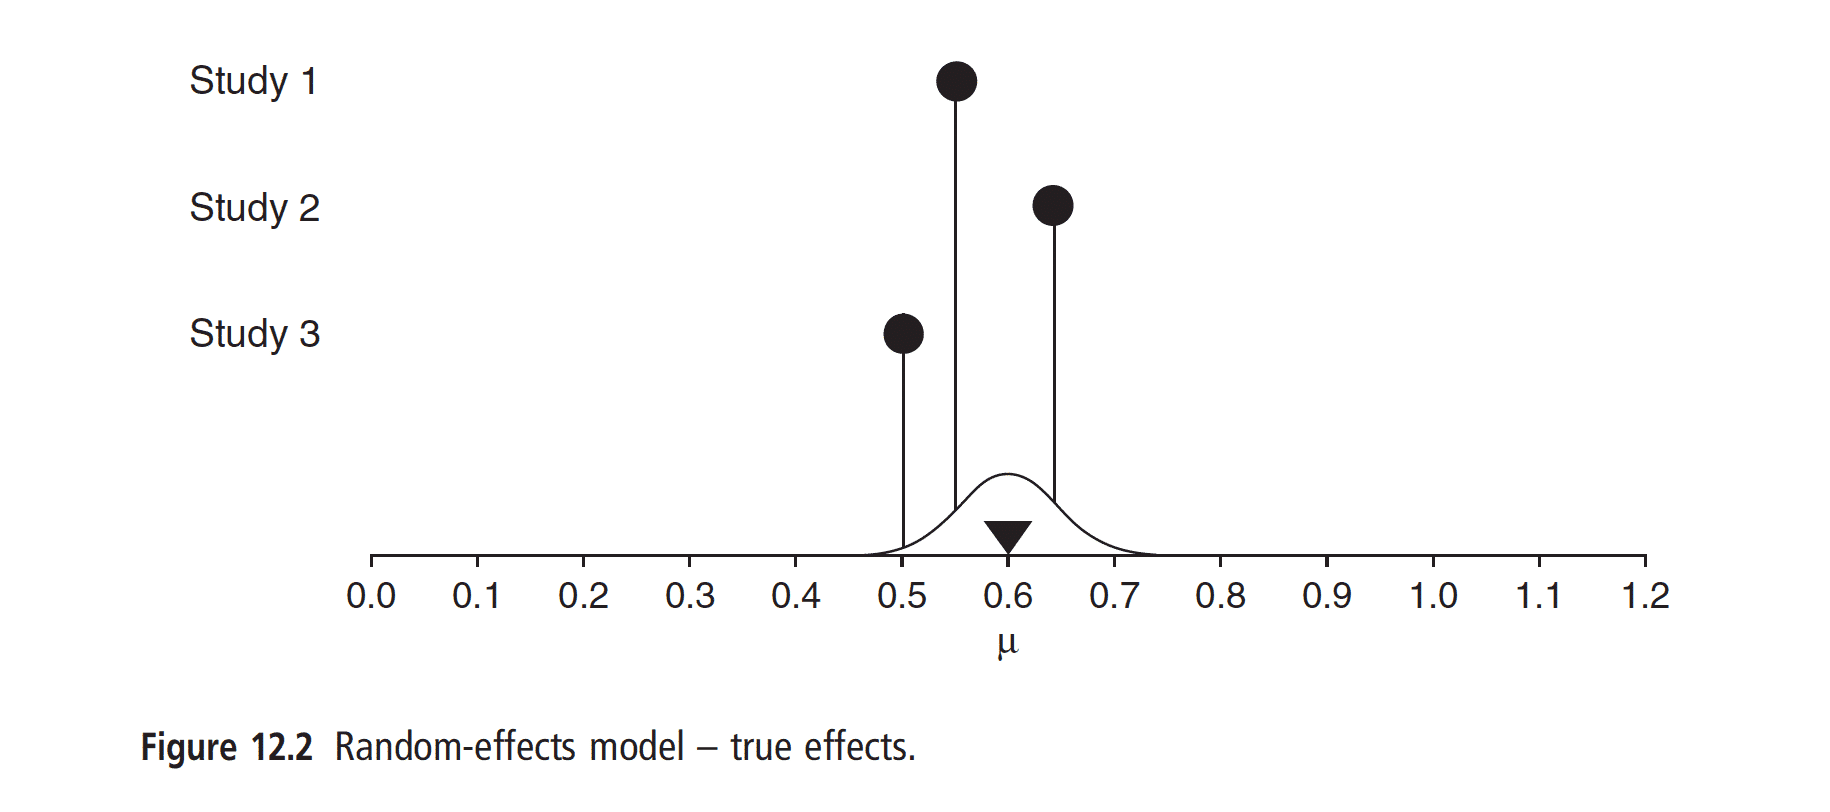 What the assumption of multiple true effects looks like in the random effects model